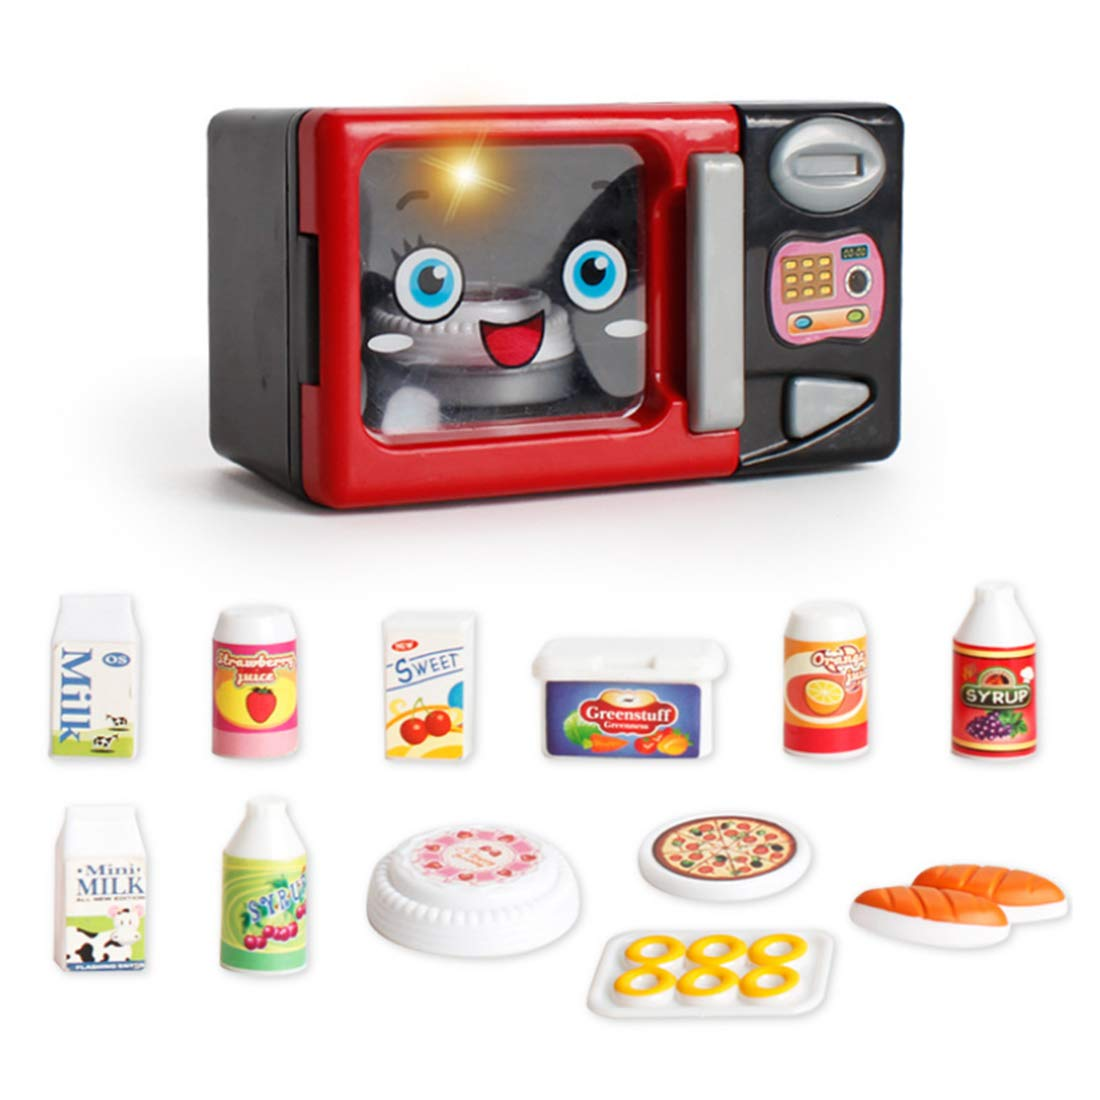 HMANE Kitchen Household Pretend Play Toys Kit Simulation Appliances Educational Toys for Kids Toddlers - (Microwave Oven) by HMANE